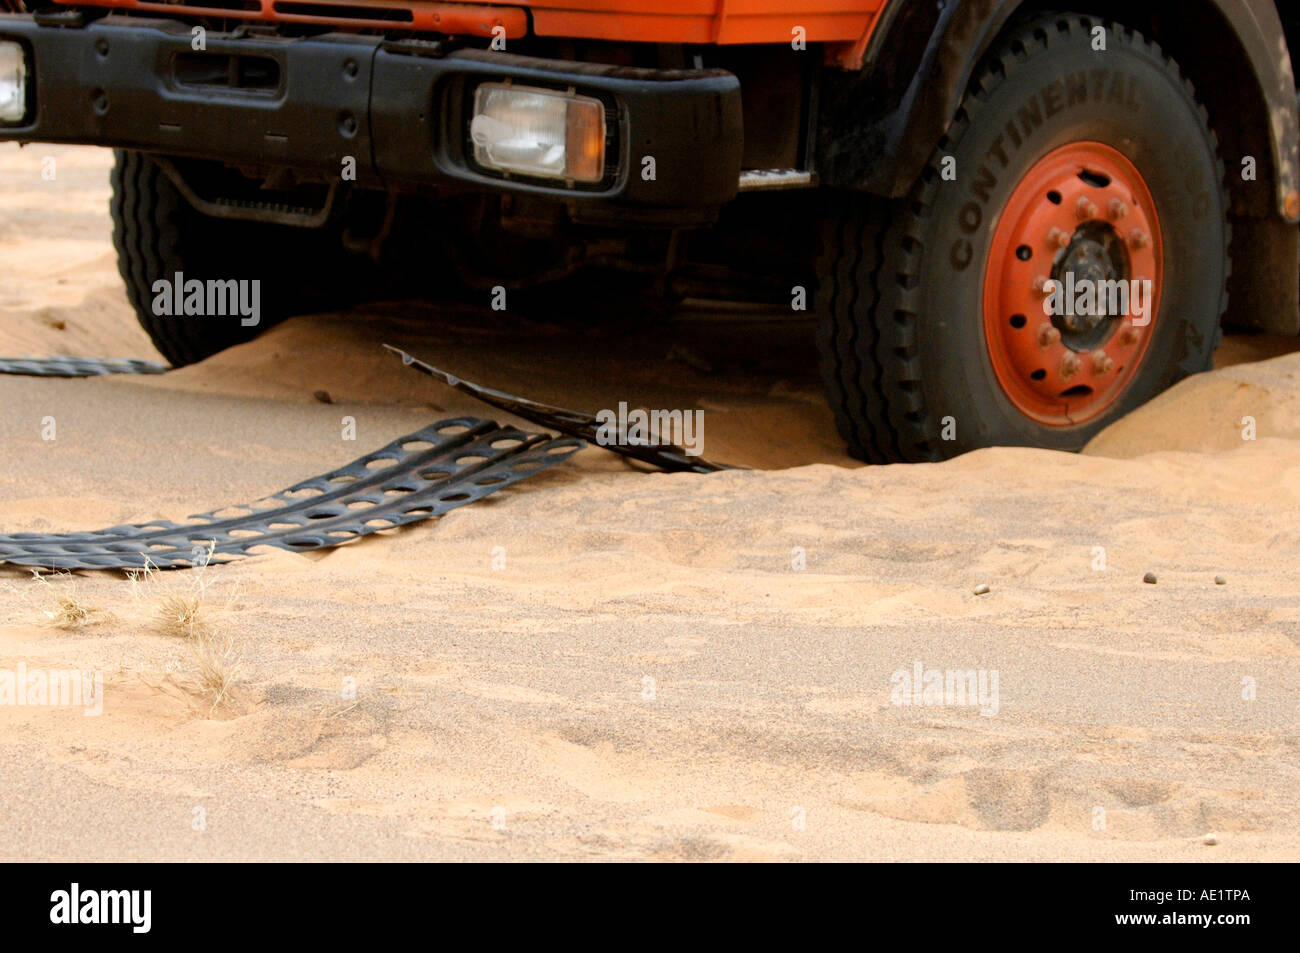 An overlander being baled out of some tricky soft sand - Stock Image